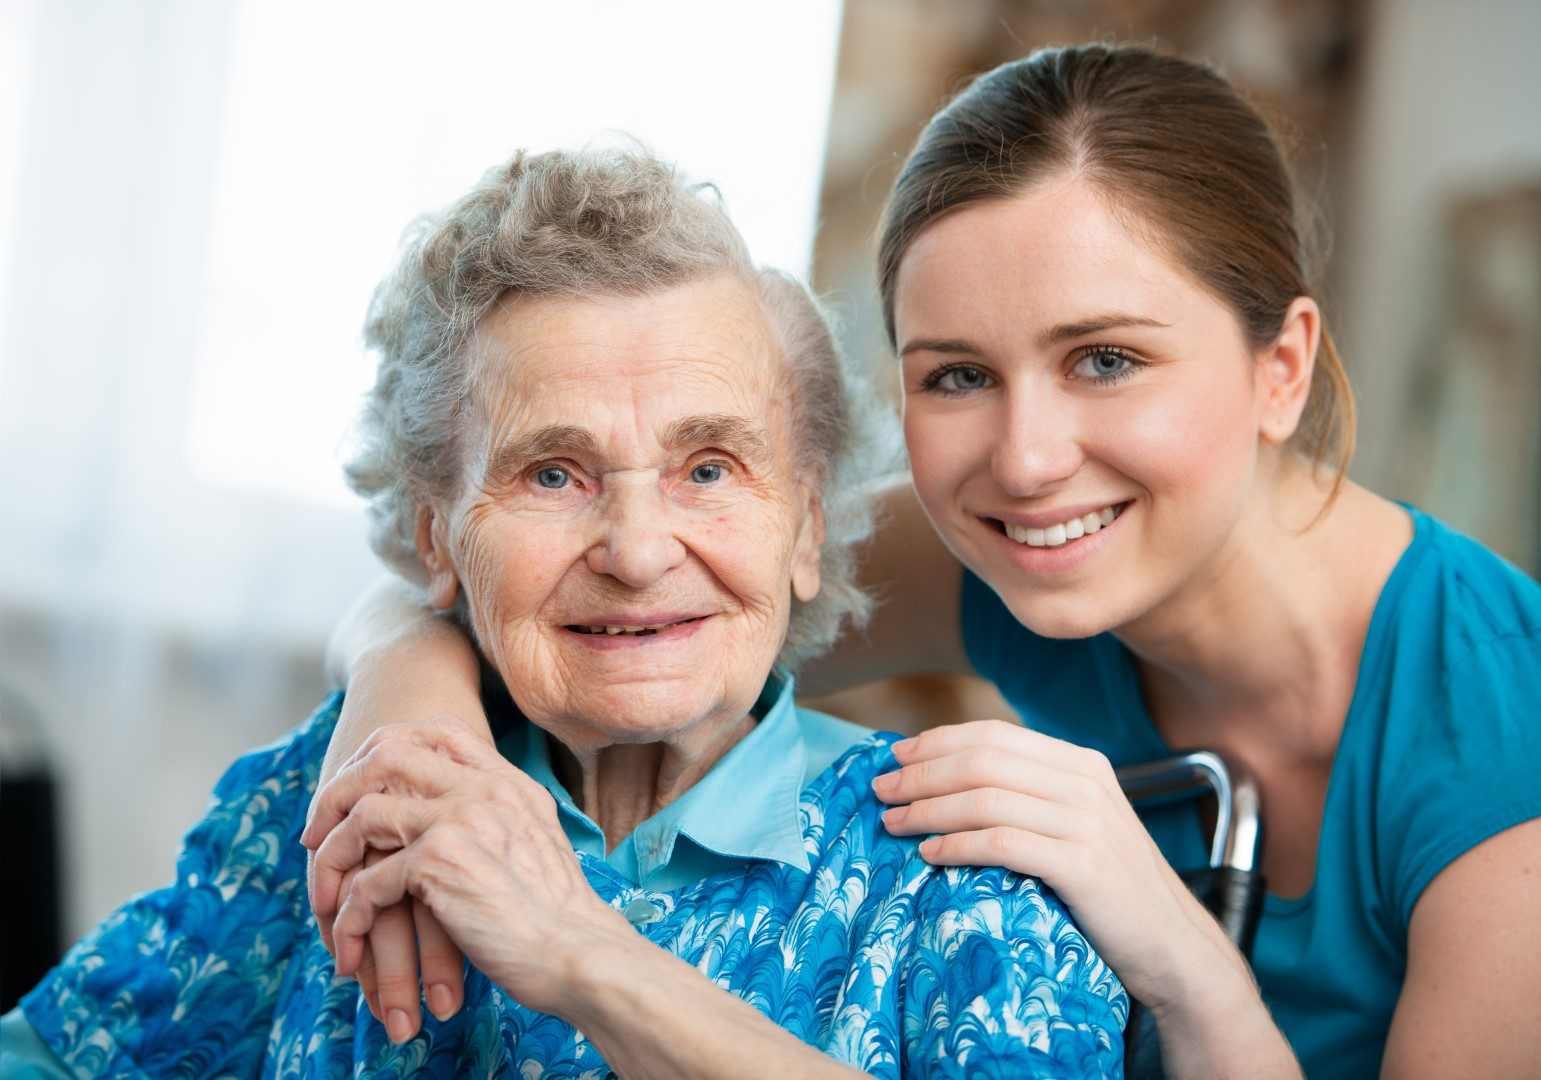 senior help, senior care, elder care, home instead, nurse next door, wecare, retire at home, classic